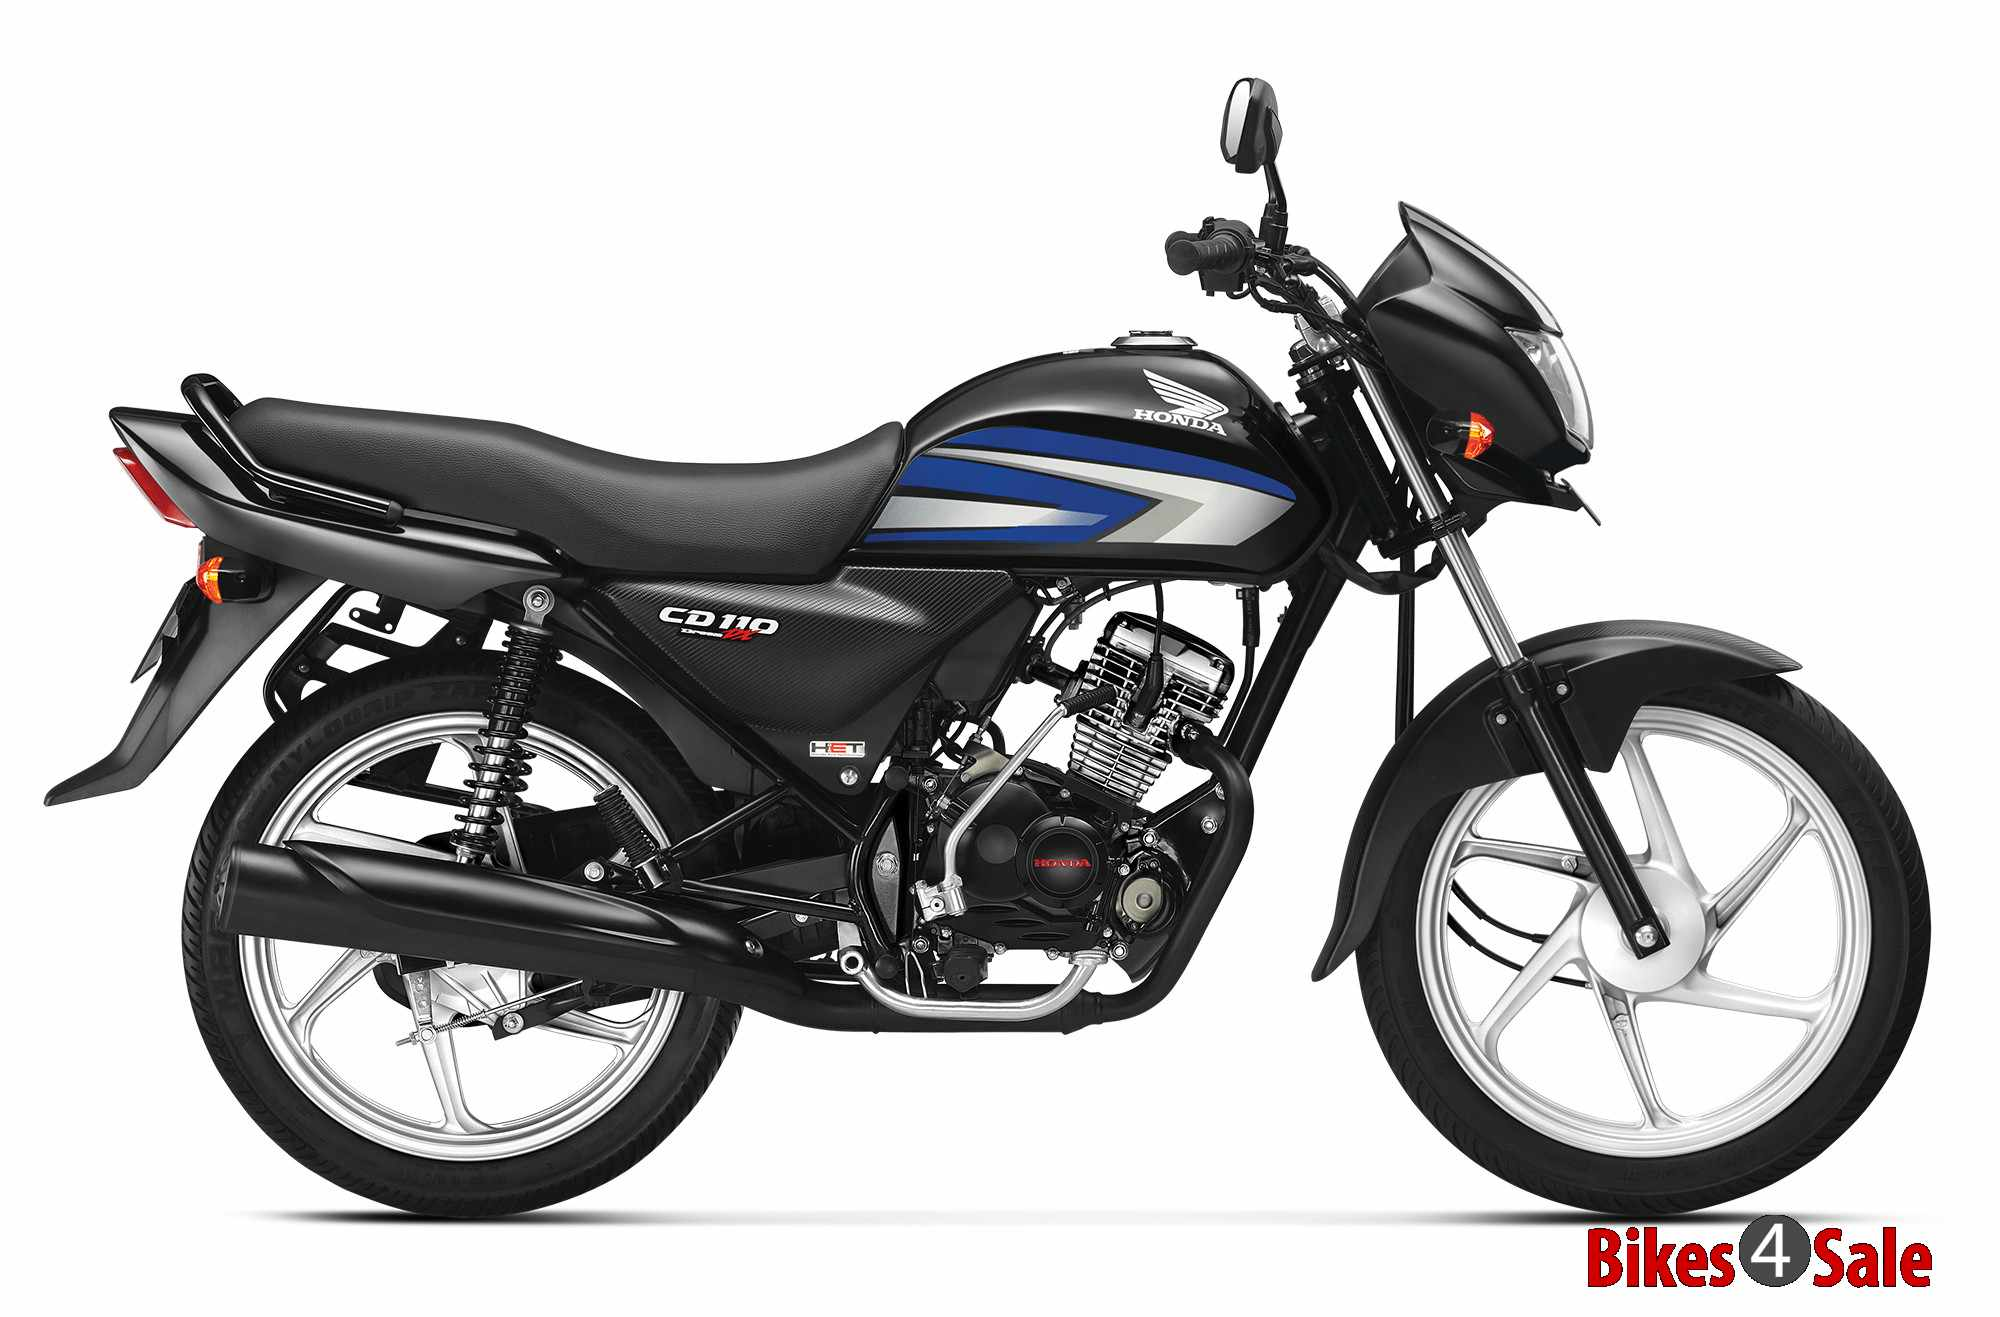 Honda Cd 110 Dream Dx Motorcycle Picture Gallery Blue